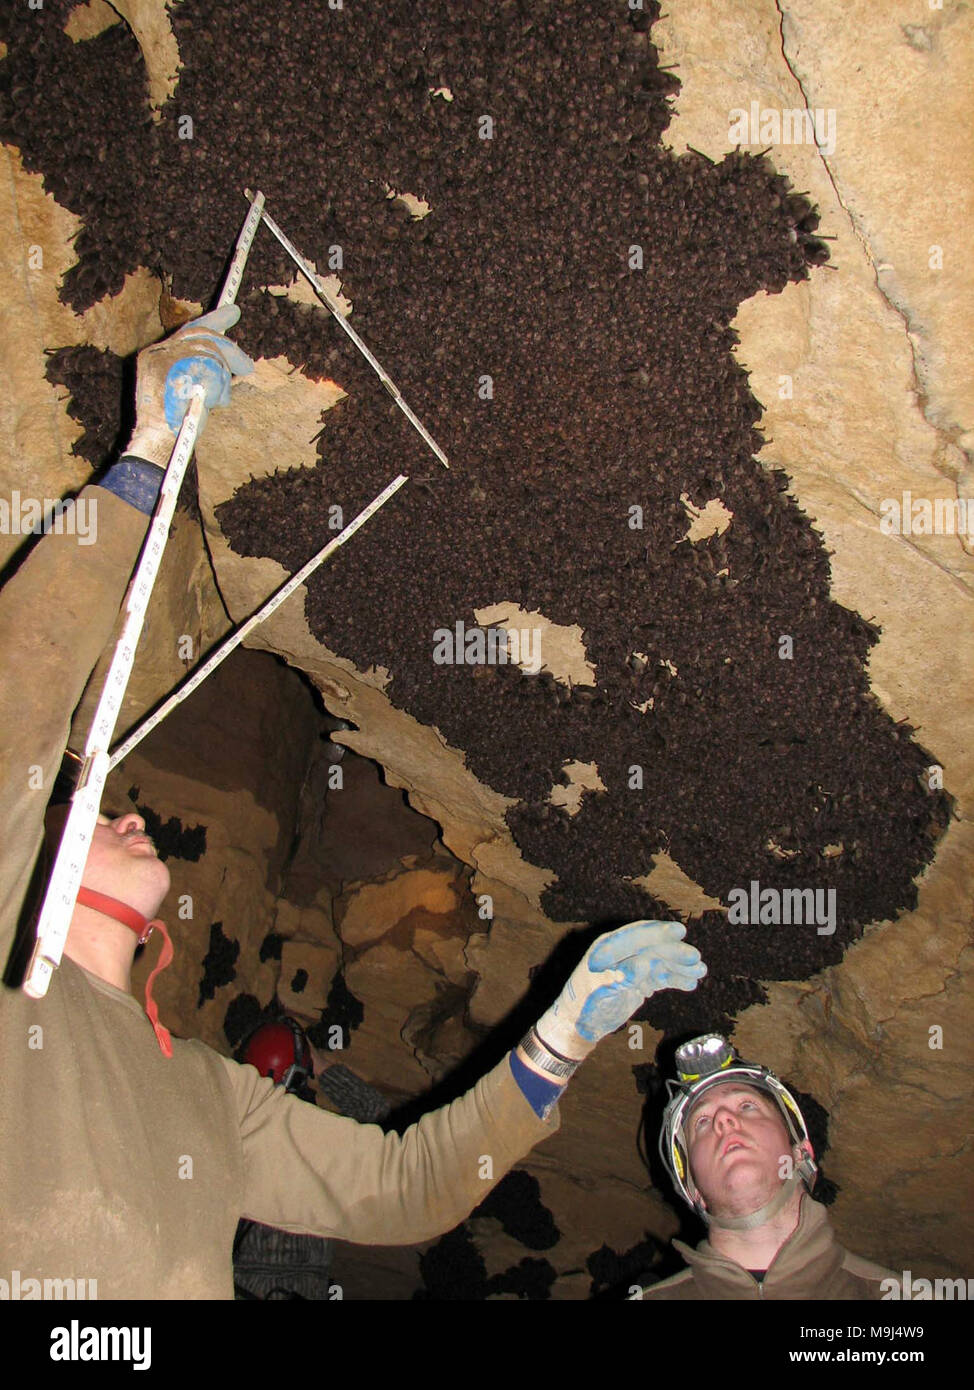 Indiana bat (Myotis sodalis) survey in 2007. Credit: USFWS; Andrew King  By measuring the area of clustered bats, biologists estimate the numbers of hibernating bats. - Stock Image